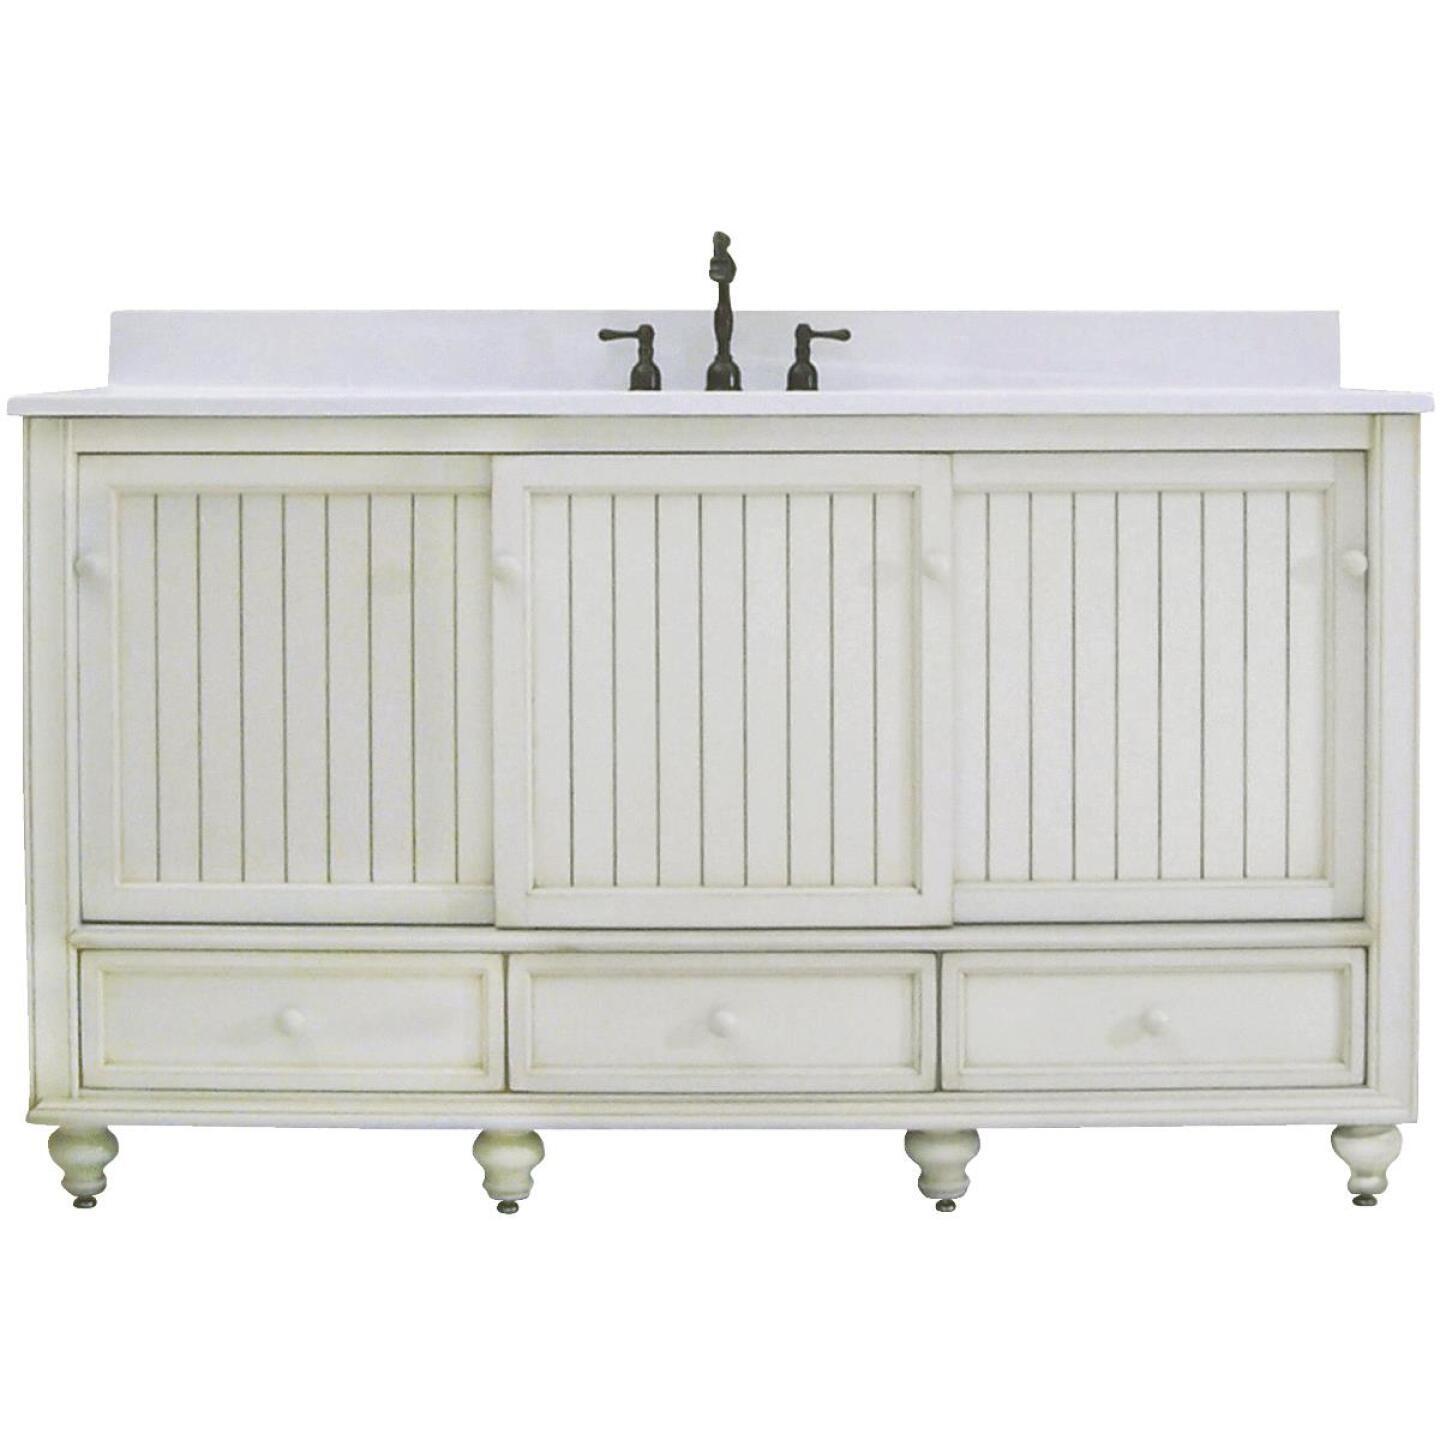 Sunny Wood Bristol Beach White 60 In. W x 34 In. H x 21 In. D Vanity Base, 2 Door/3 Drawer Image 1